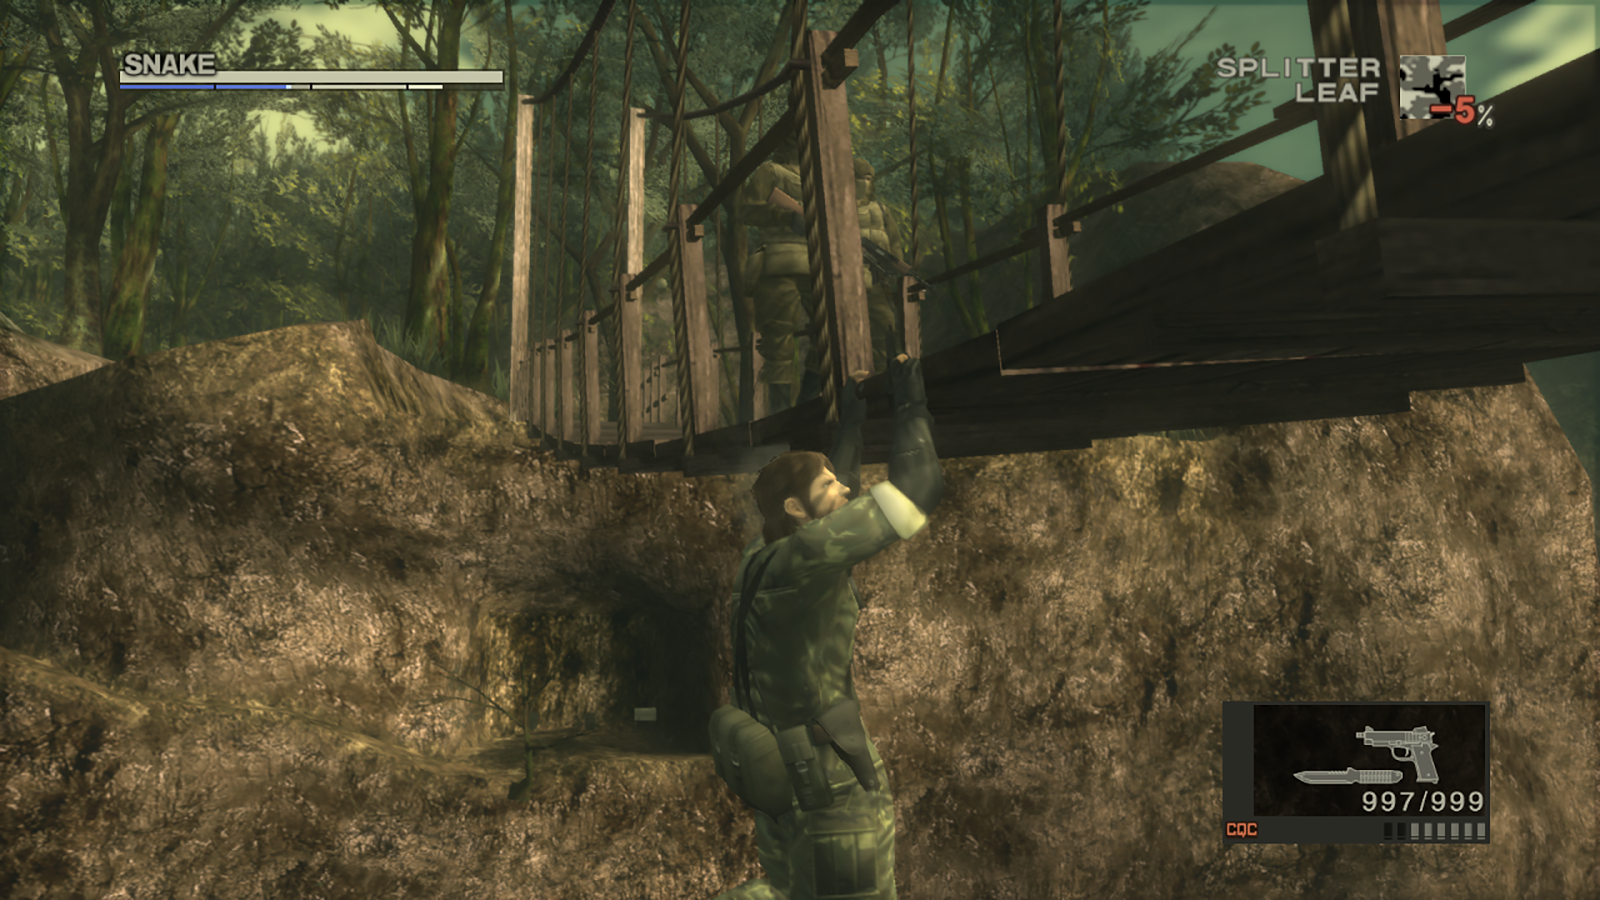 Metal Gear Solid 3: Snake Eater HD for SHIELD TV - Metal Gear Solid 3: Snake Eater Скриншот